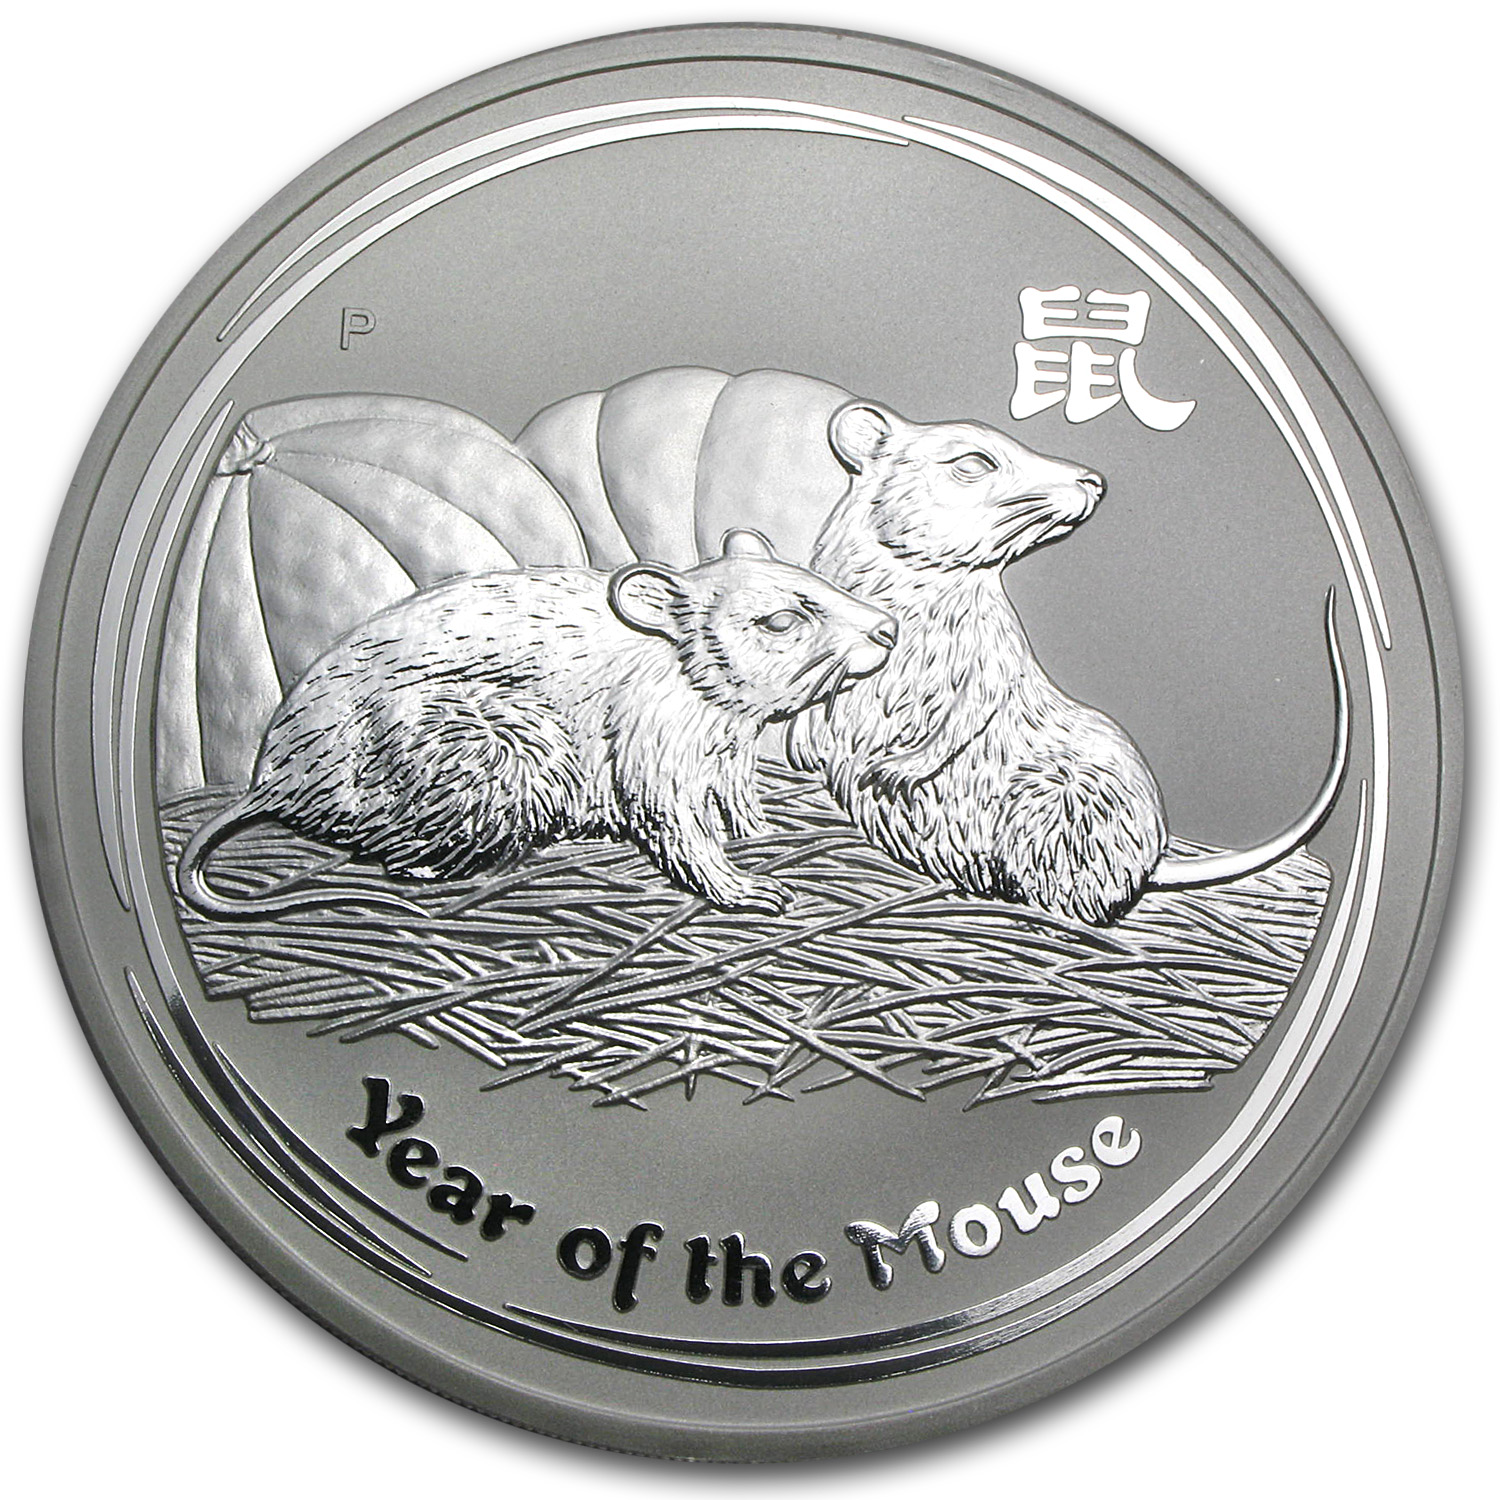 2008 10 oz Silver Australian Year of the Mouse Coin (Series II)